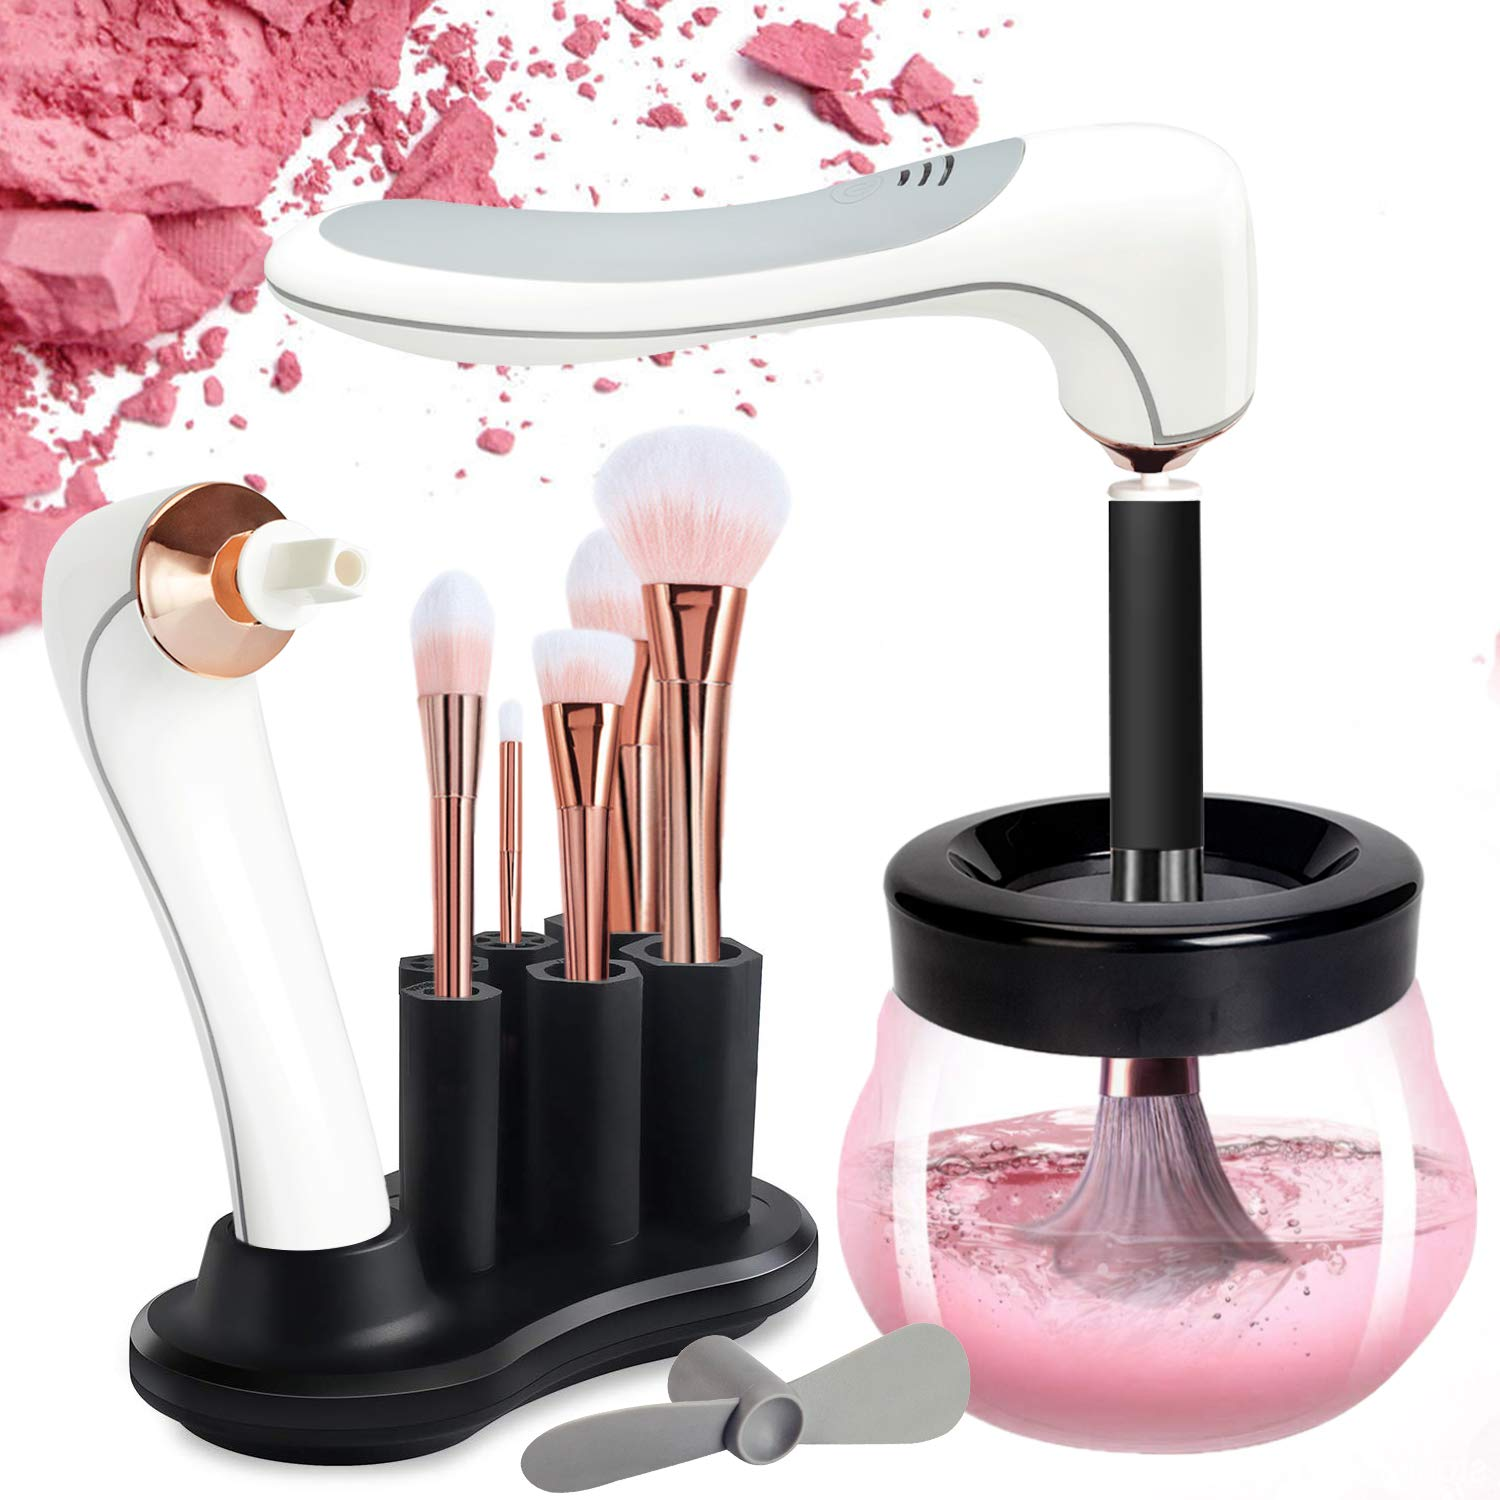 DOTSOG Makeup Brush Cleaner Dryer, Makeup Brush Cleaner Machine with 8 Rubber Collars, Wash and Dry in Seconds, Deep Cosmetic Brush Spinner for All Size Brushes